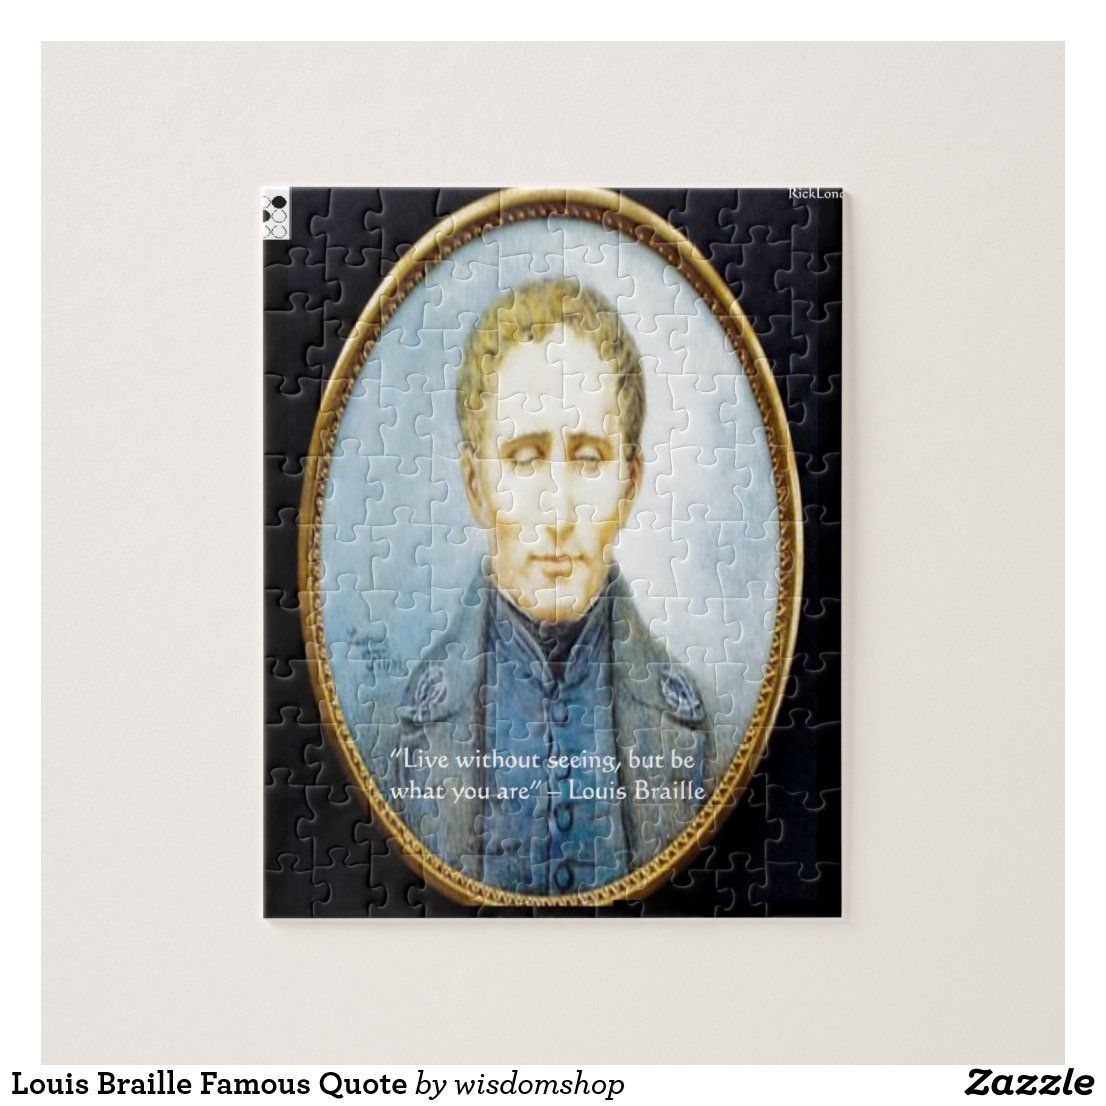 Louis Braille Famous Quote Jigsaw Puzzle In 2020 Famous Quotes